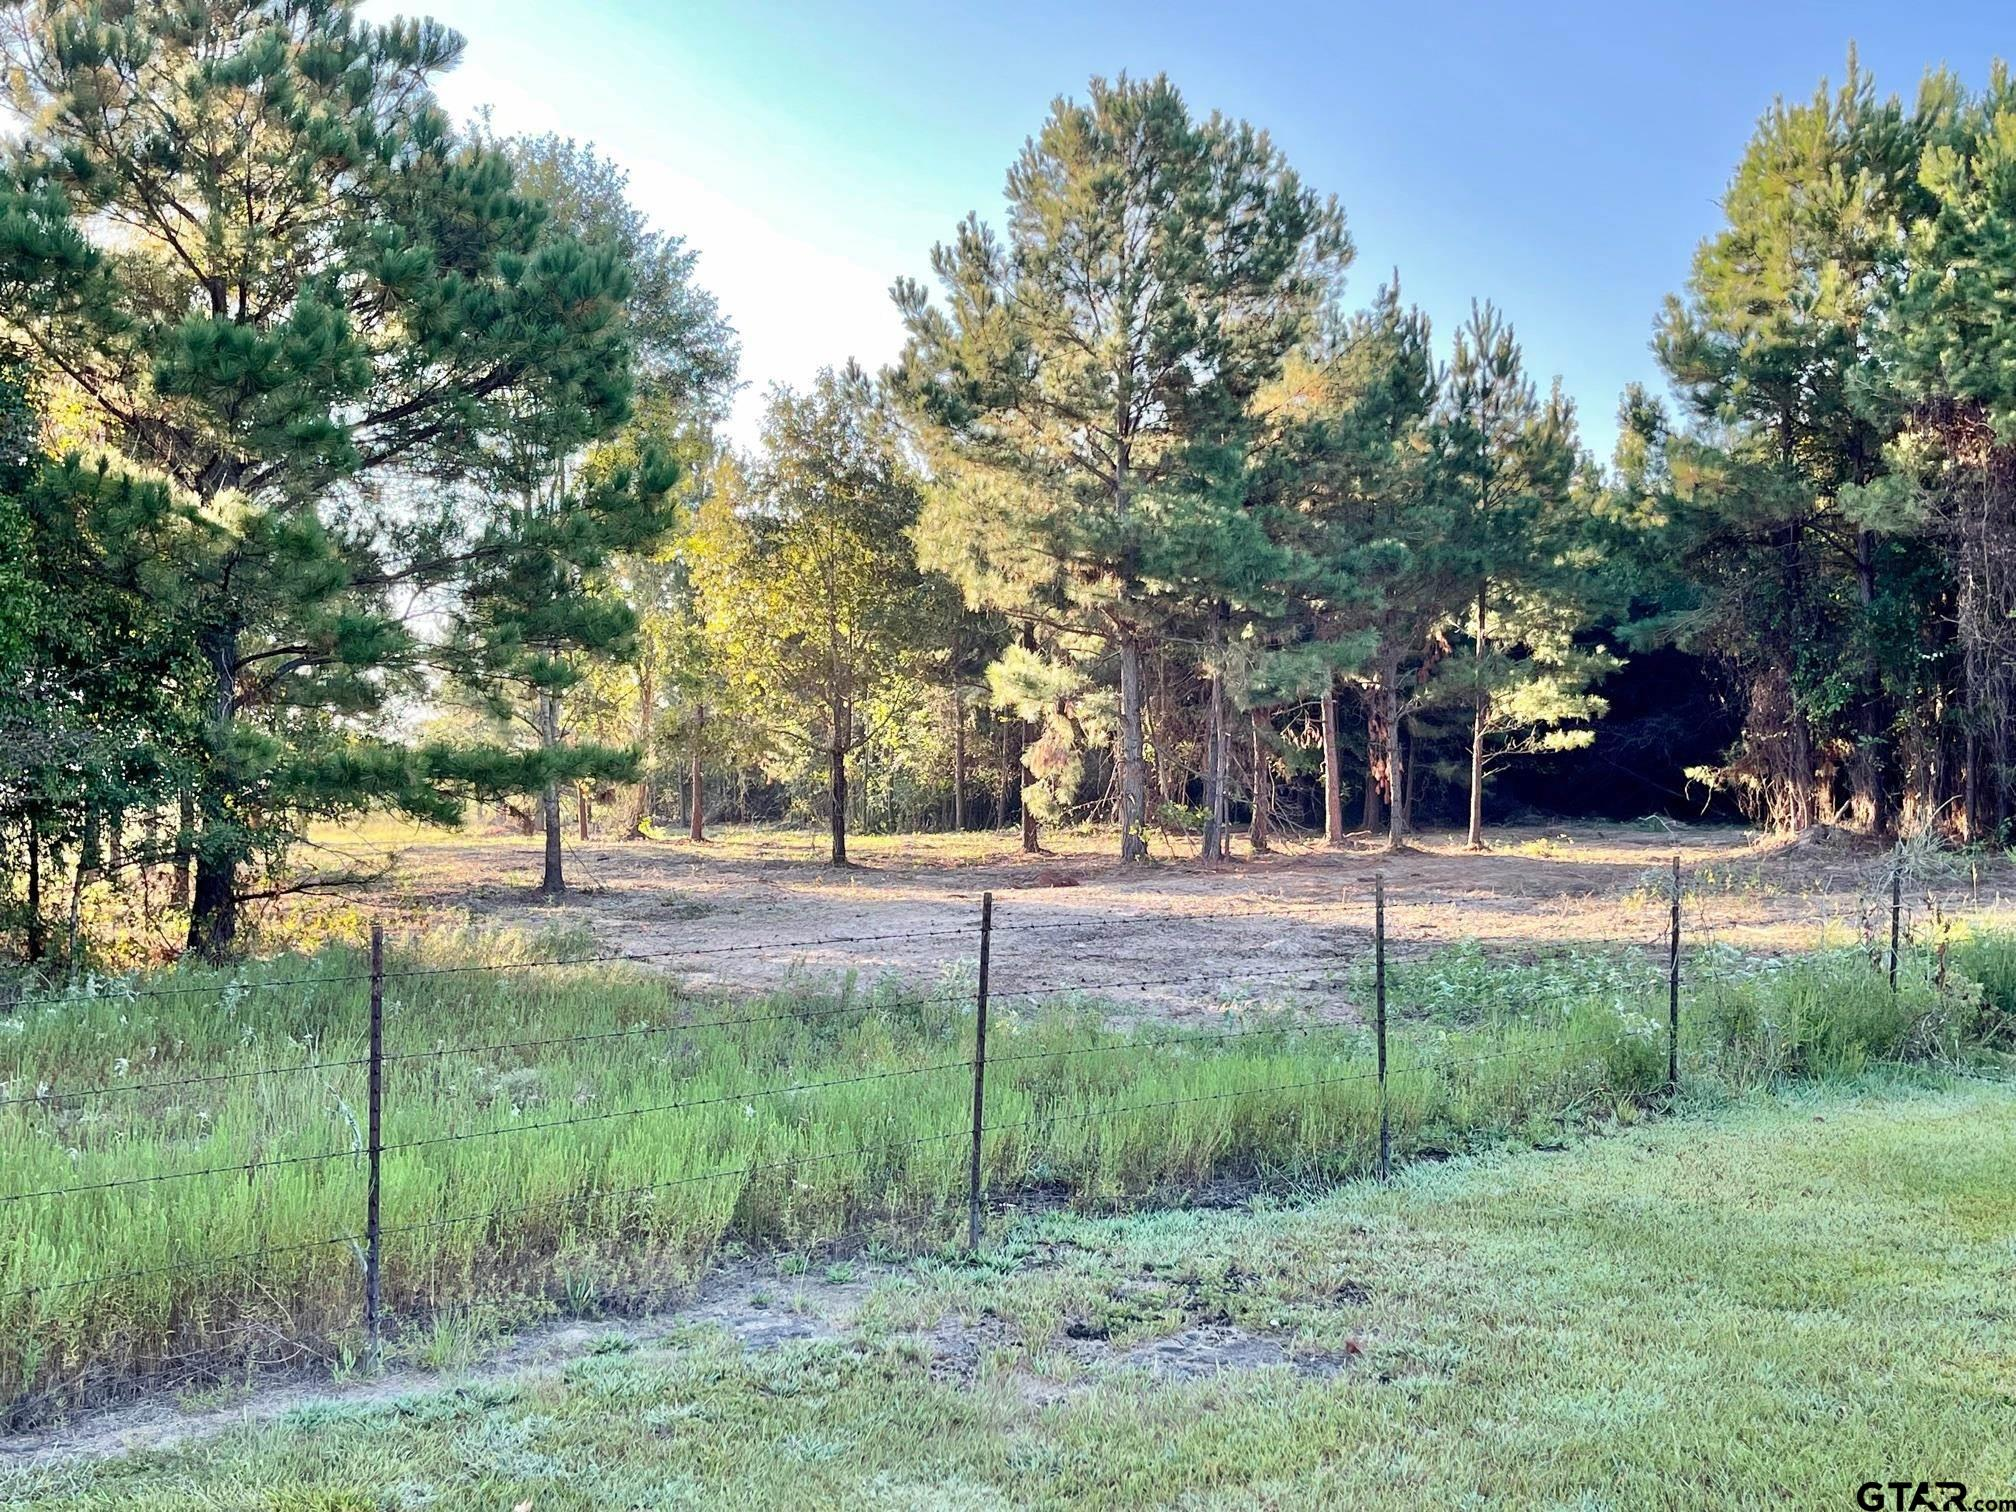 Look at this...2 acres ready for you! Nice level 2 acres of land & less Than 10 miles from Lake Hawkins. Big Sandy ISD. Great place to build home. Water and electricity available. Country enough, but not too far from HWY 80 or HWY 14. Convenient location! Mobile home restricted. Sign on property. Come see today!!...this will go quick!